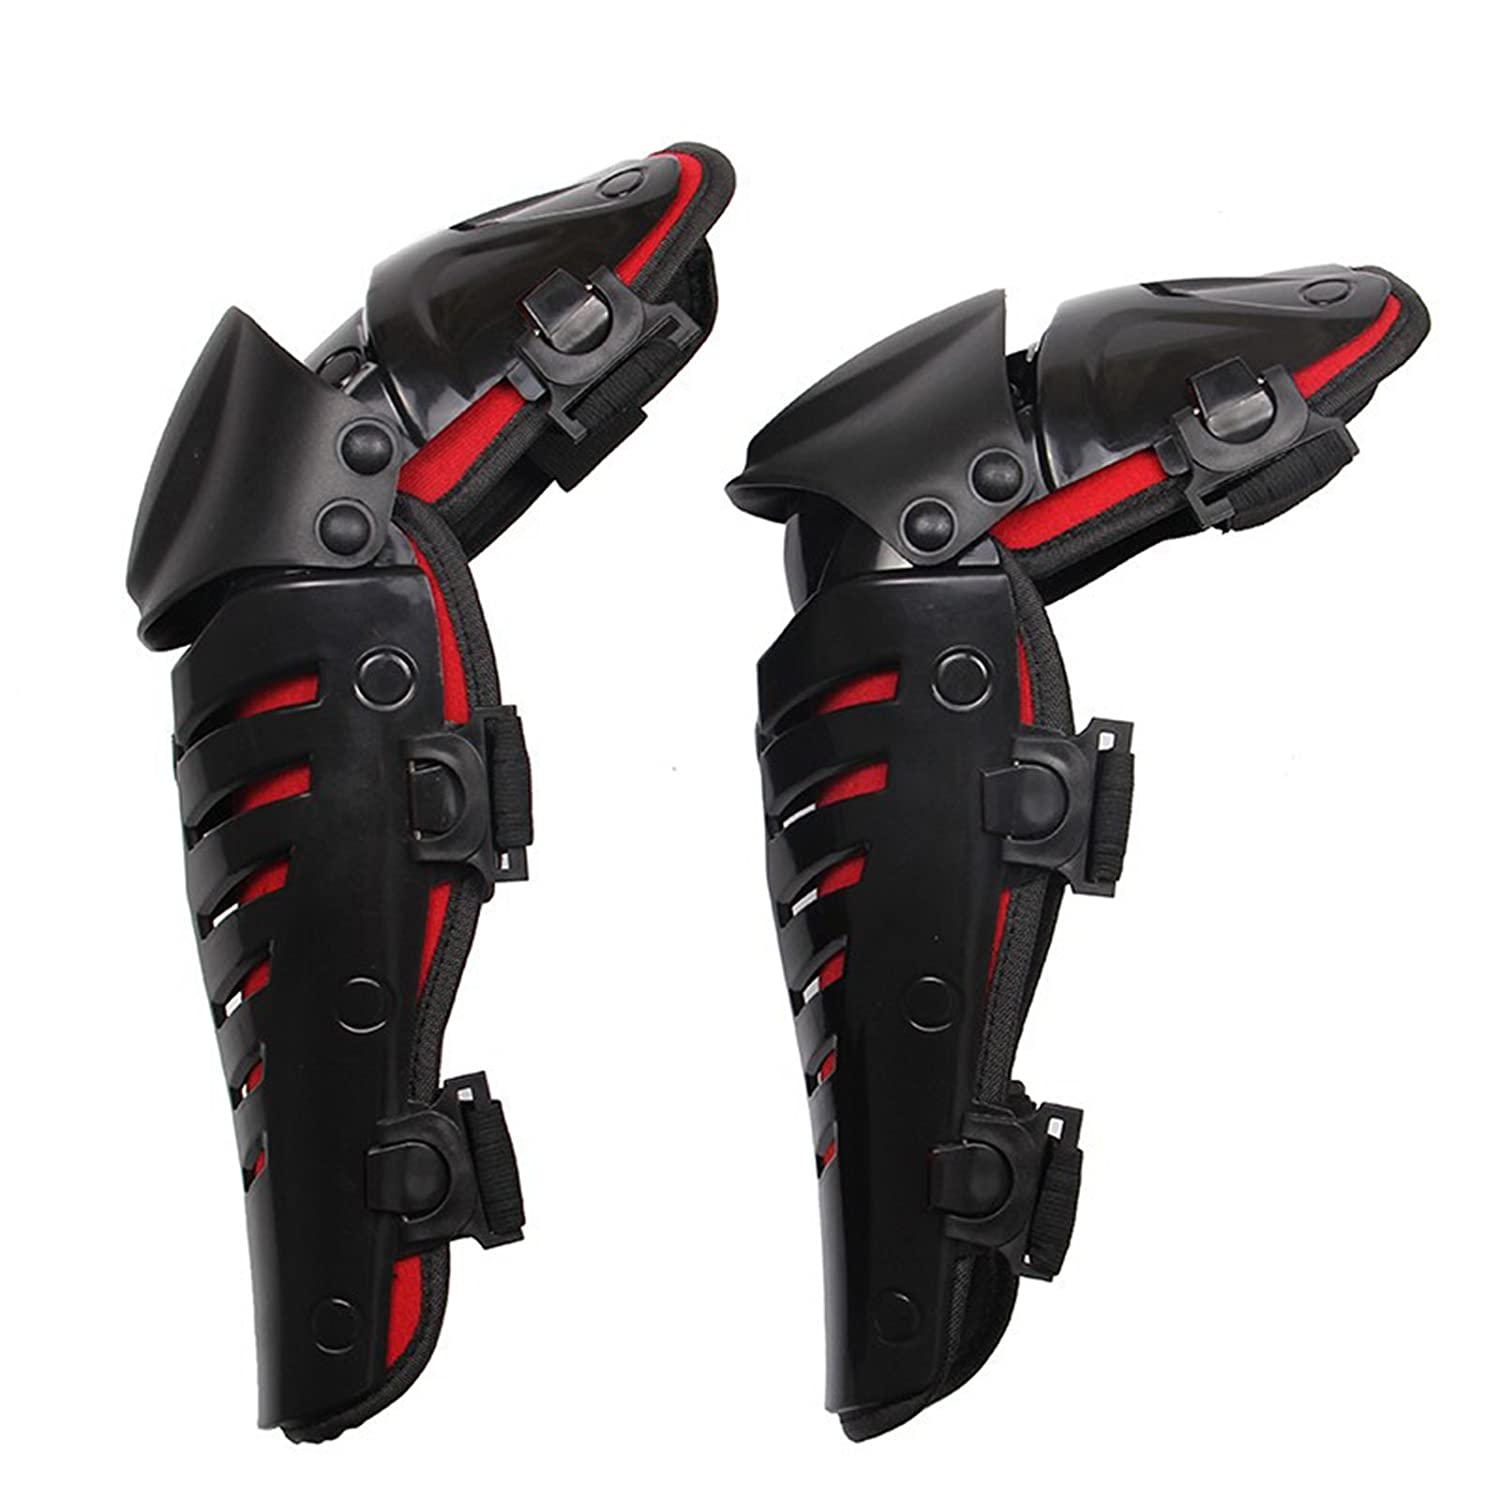 BARHAR 1 Pair of Adults Fashion Knee Shin Armor Protect Guard Pads Accessories with Plastic Cement Hook for Motorcycle Motocross Racing BARHAR02